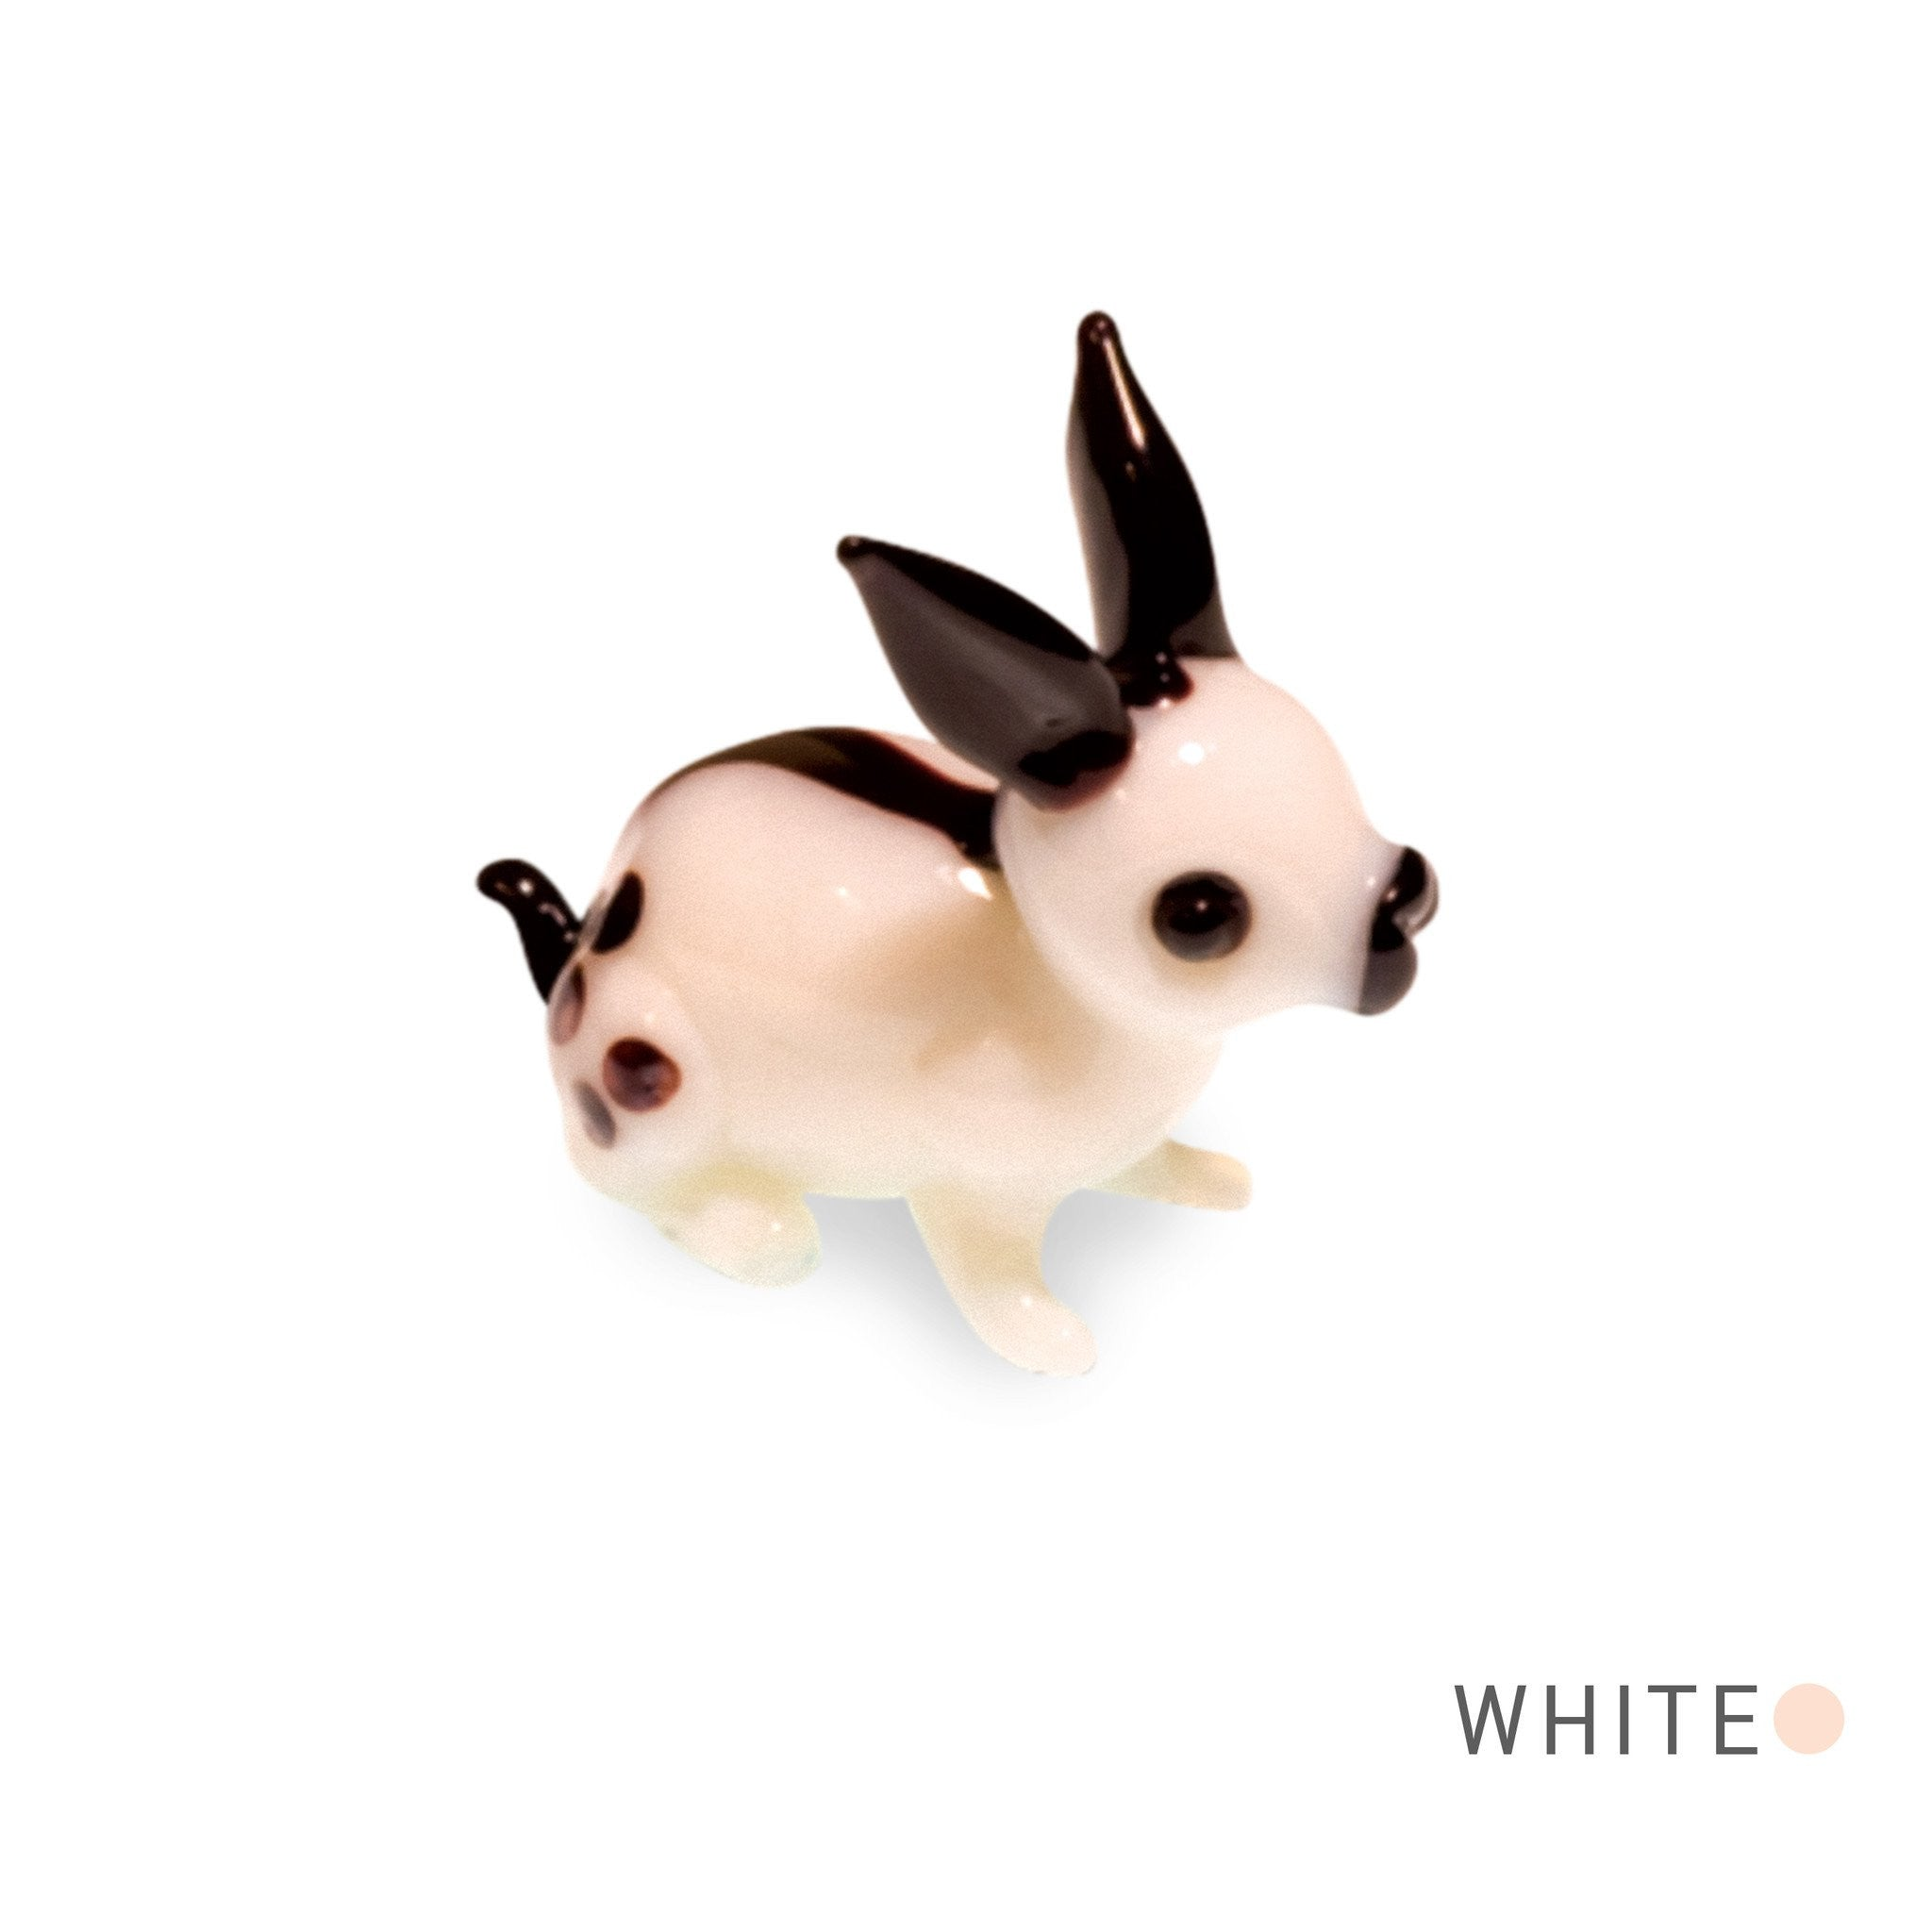 Bit the Black and White Rabbit (in Tynies Collector's Frame) miniature glass figurines